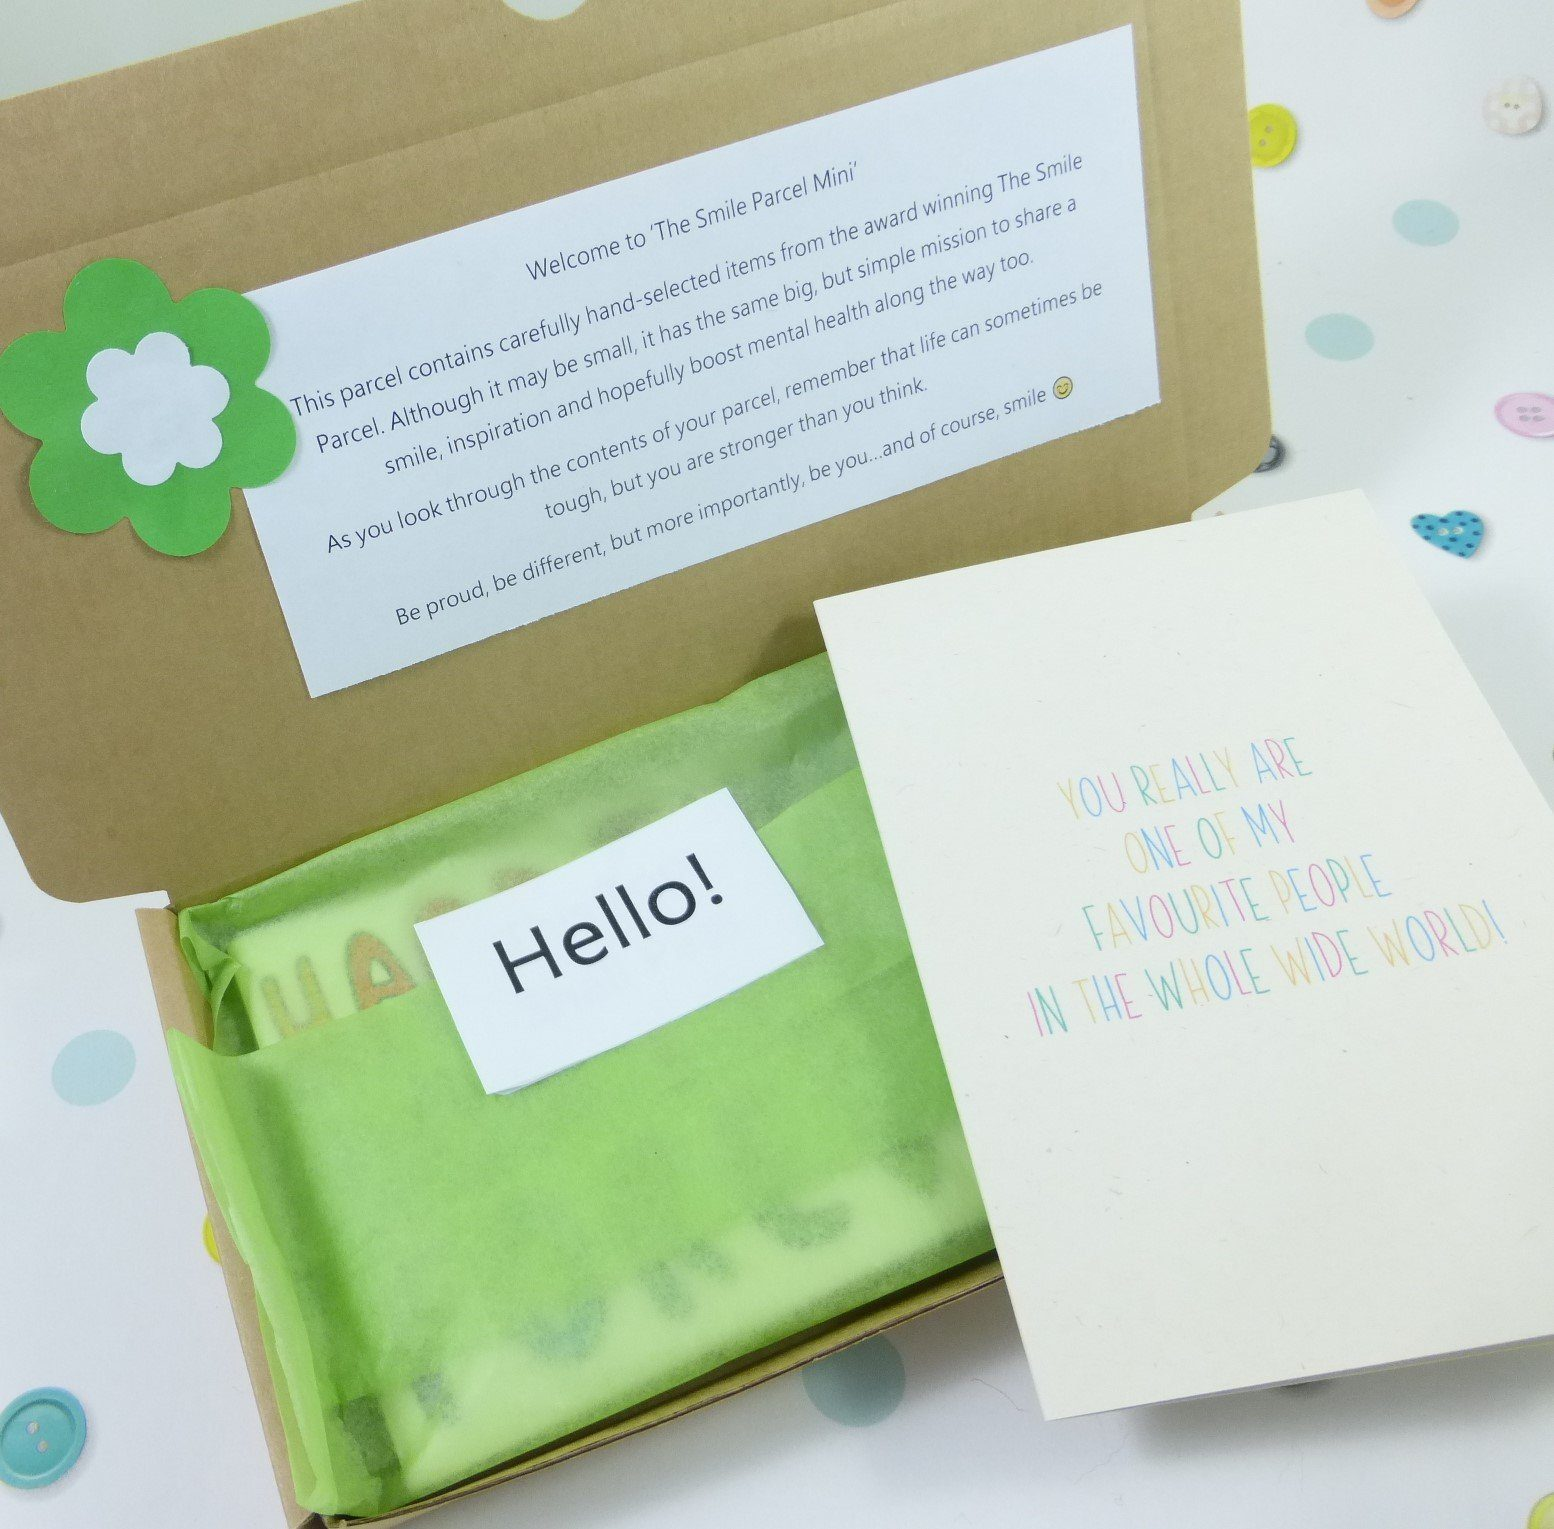 Best Friend Gift, Letterbox Friendly, Pick Me Up Gift, The Smile Parcel Mini, Self Care Box, Mental Health Gift, Just Because Kind Shop